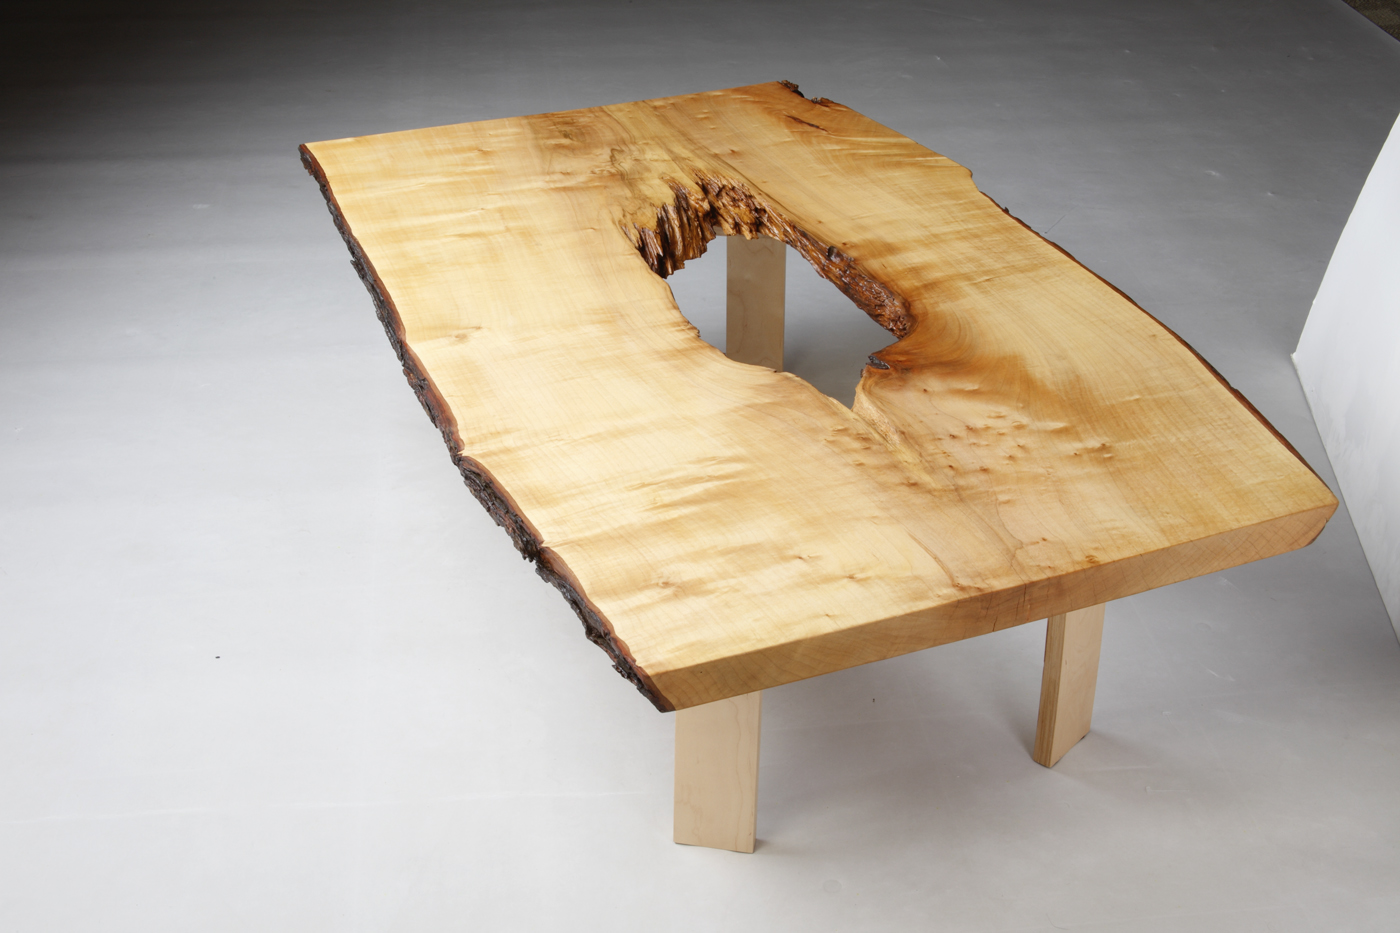 introducing our new live edge furniture - Dane Decor